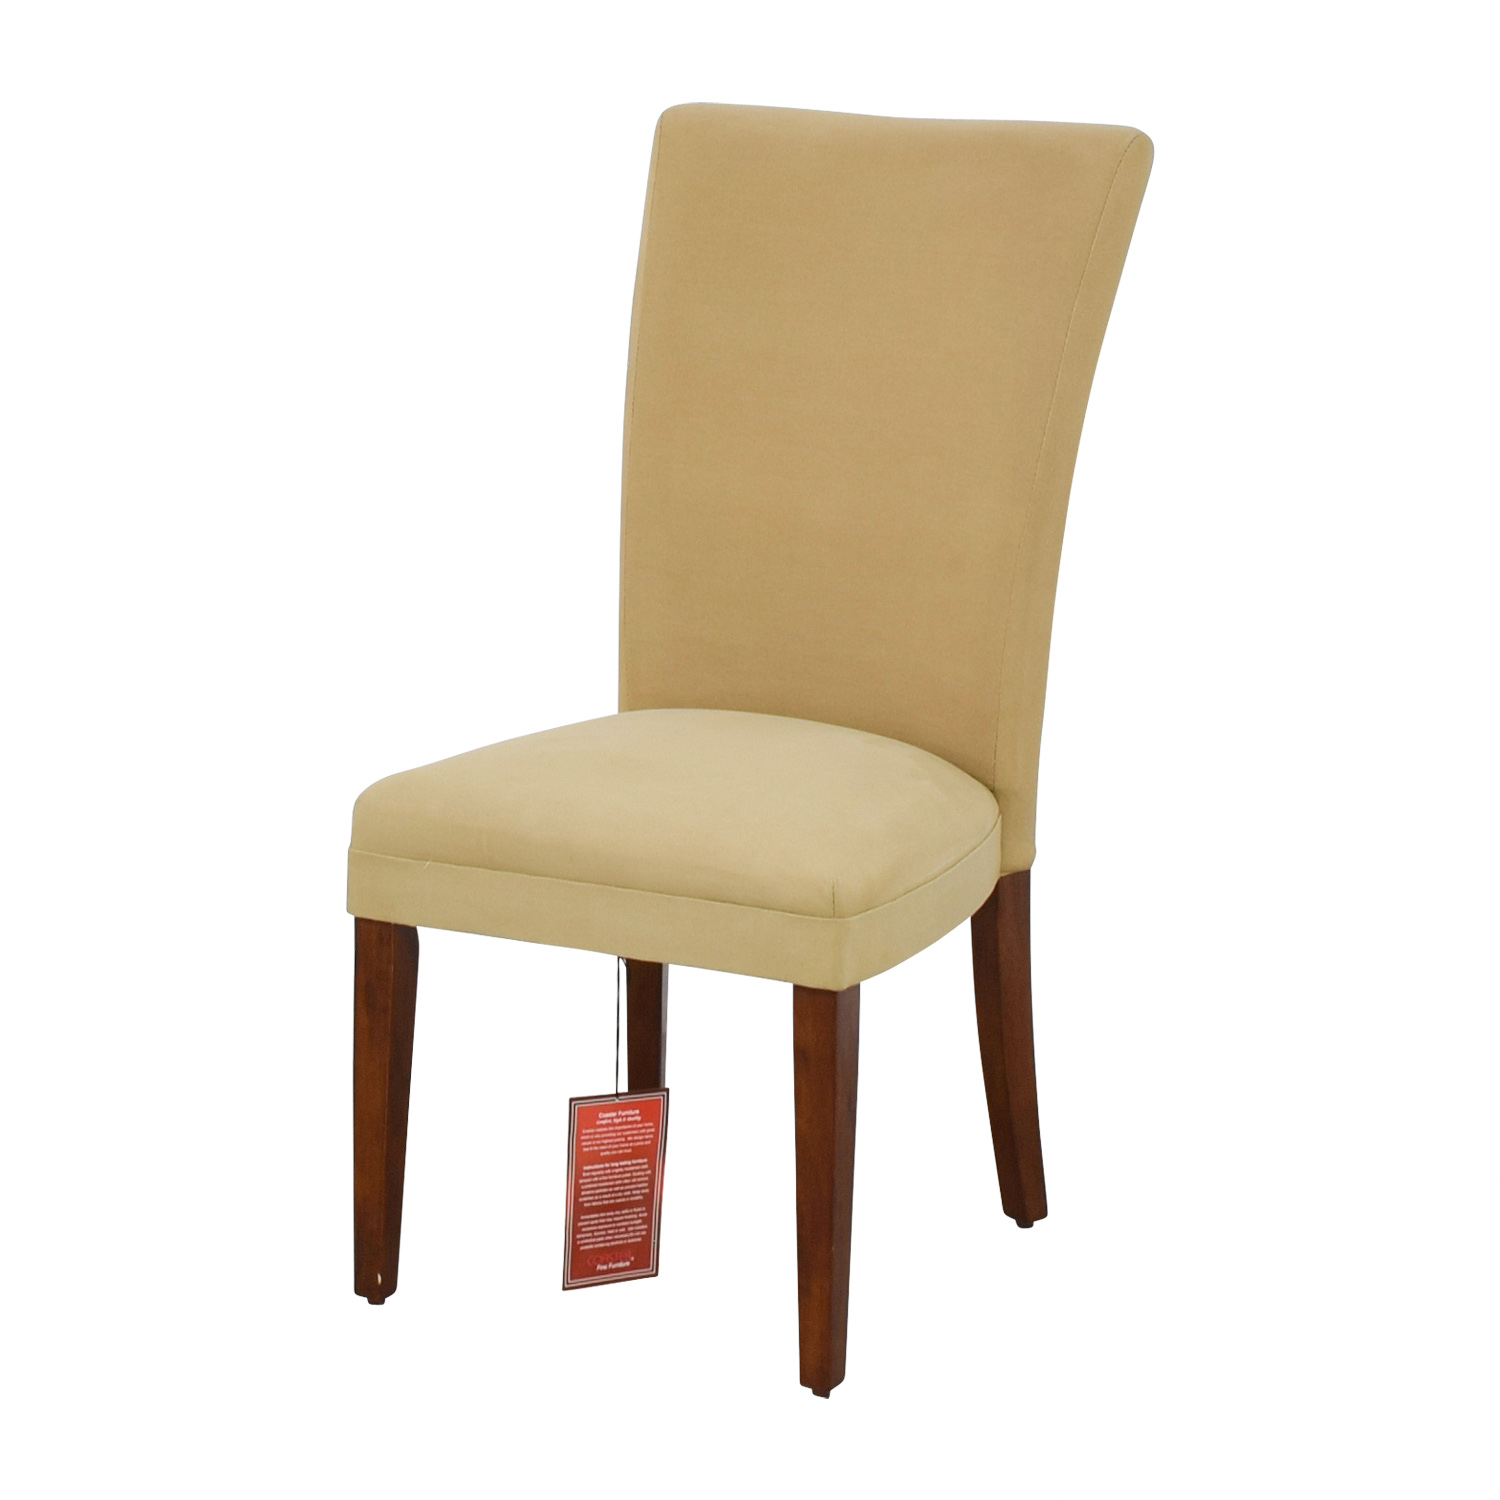 49 off coaster coaster high back tan upholstered chair chairs. Black Bedroom Furniture Sets. Home Design Ideas